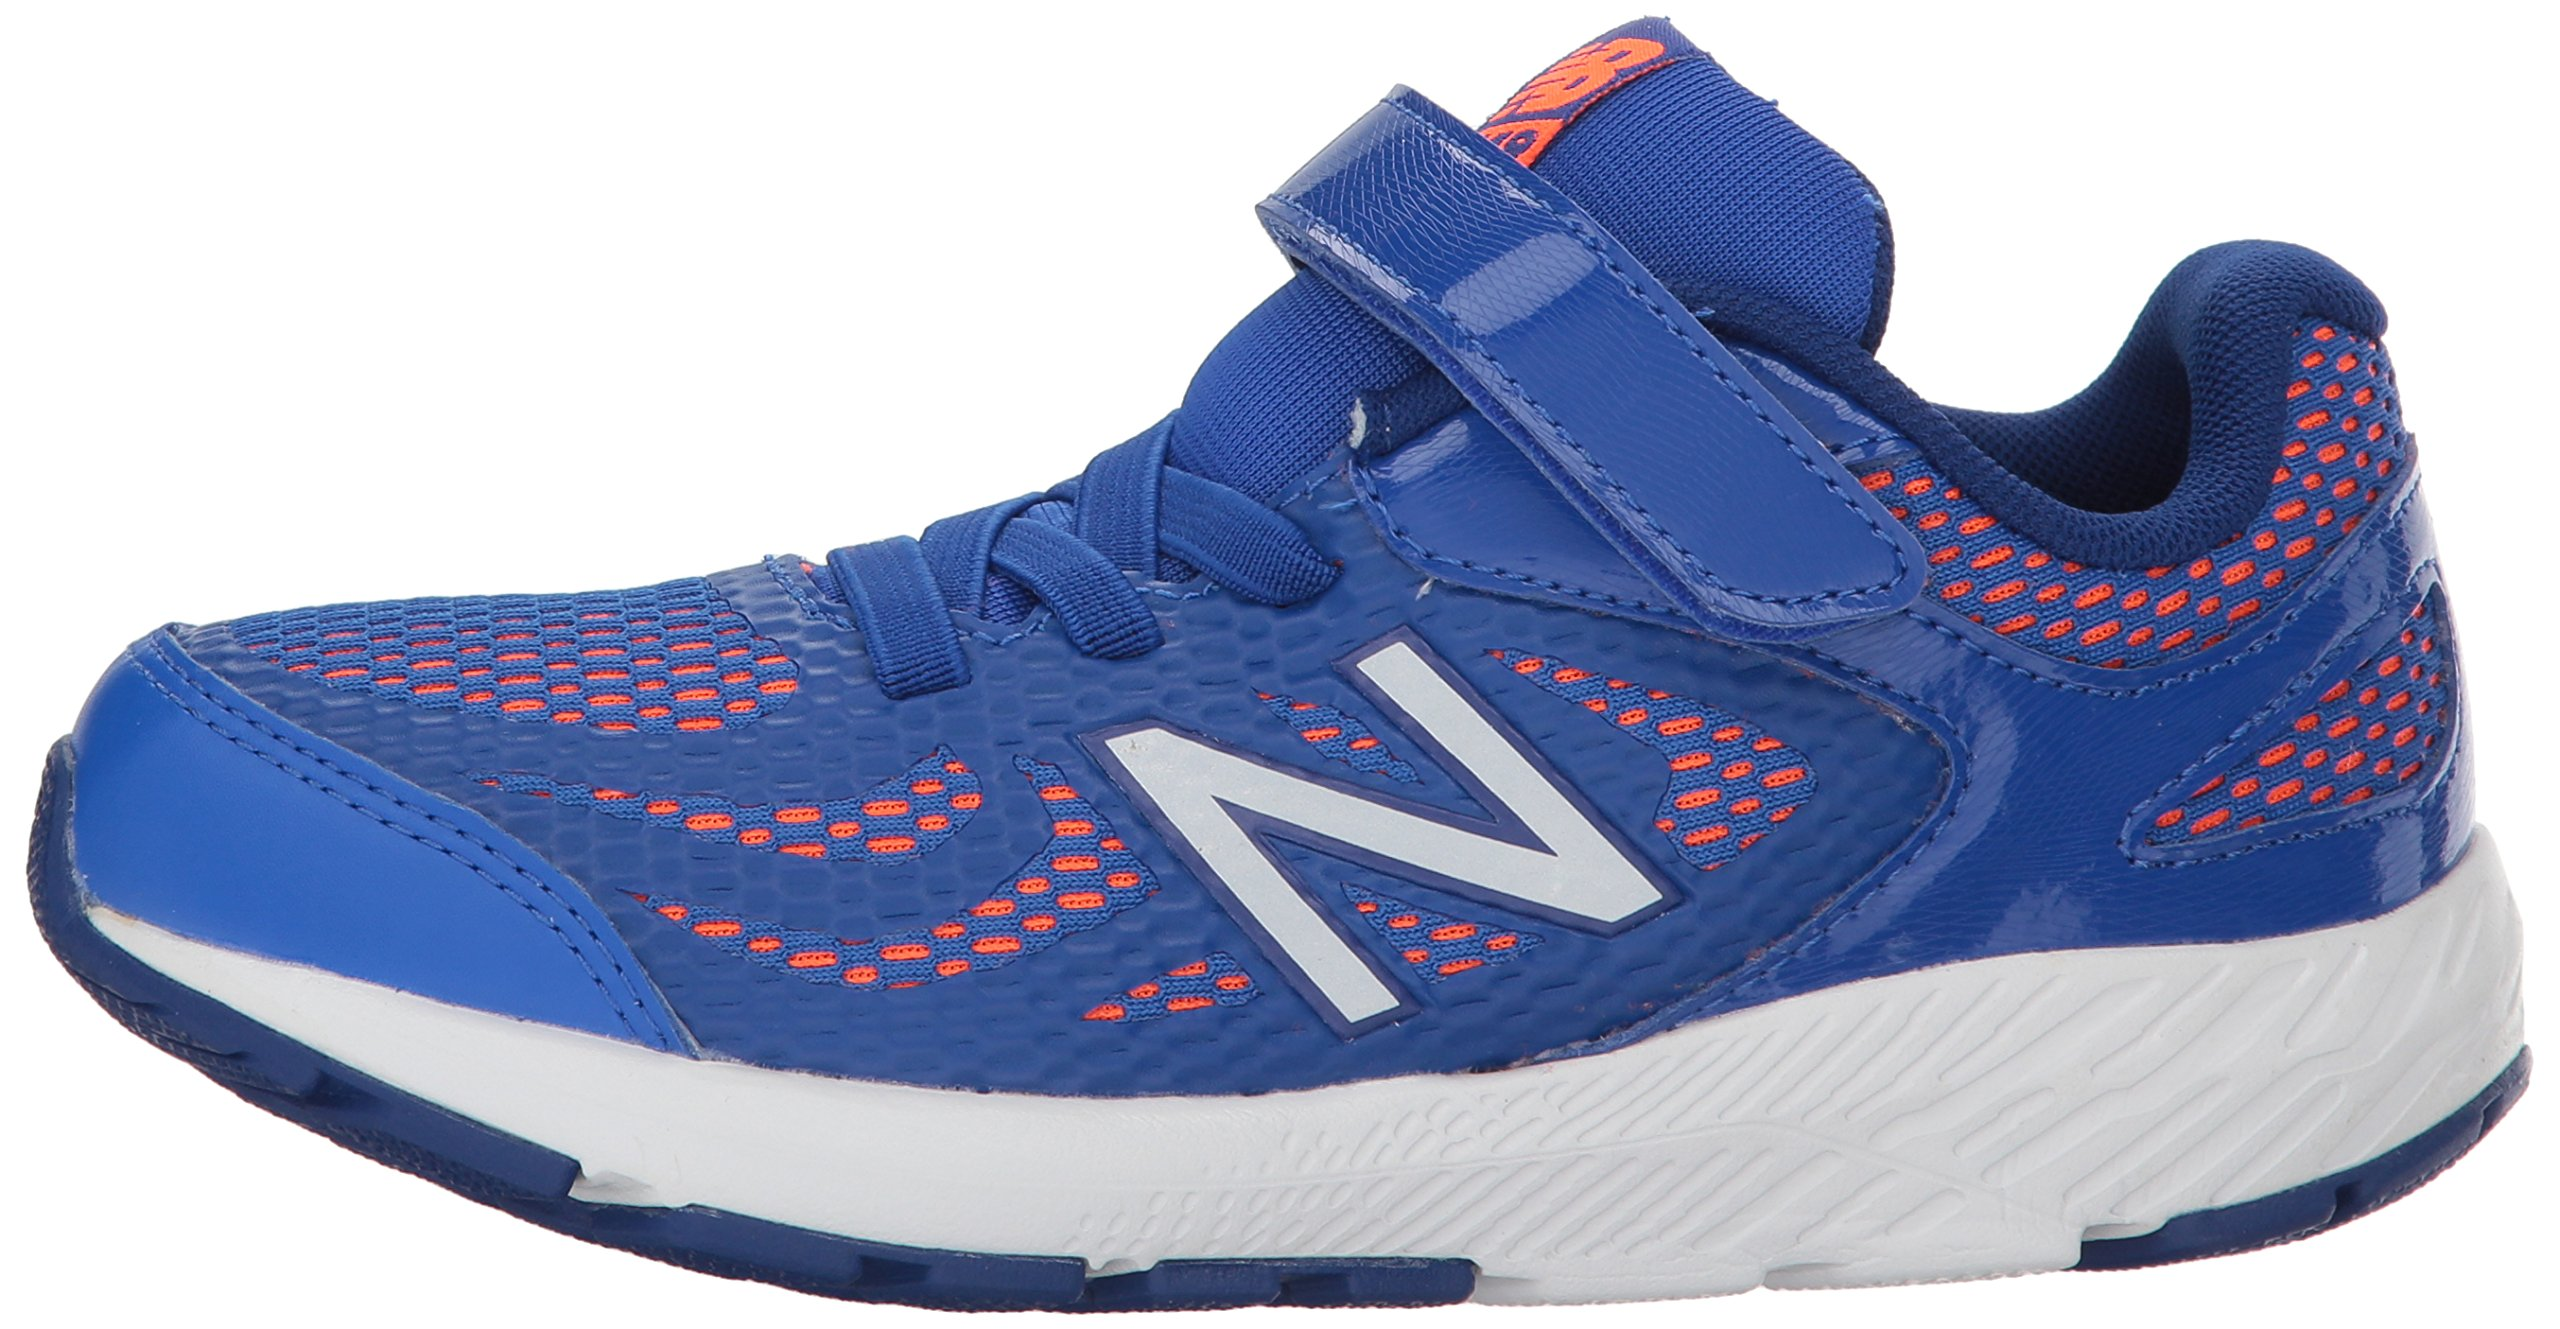 New Balance Boys' 519v1 Hook and Loop Running Shoe Pacific/Dynomite 2 M US Infant by New Balance (Image #5)